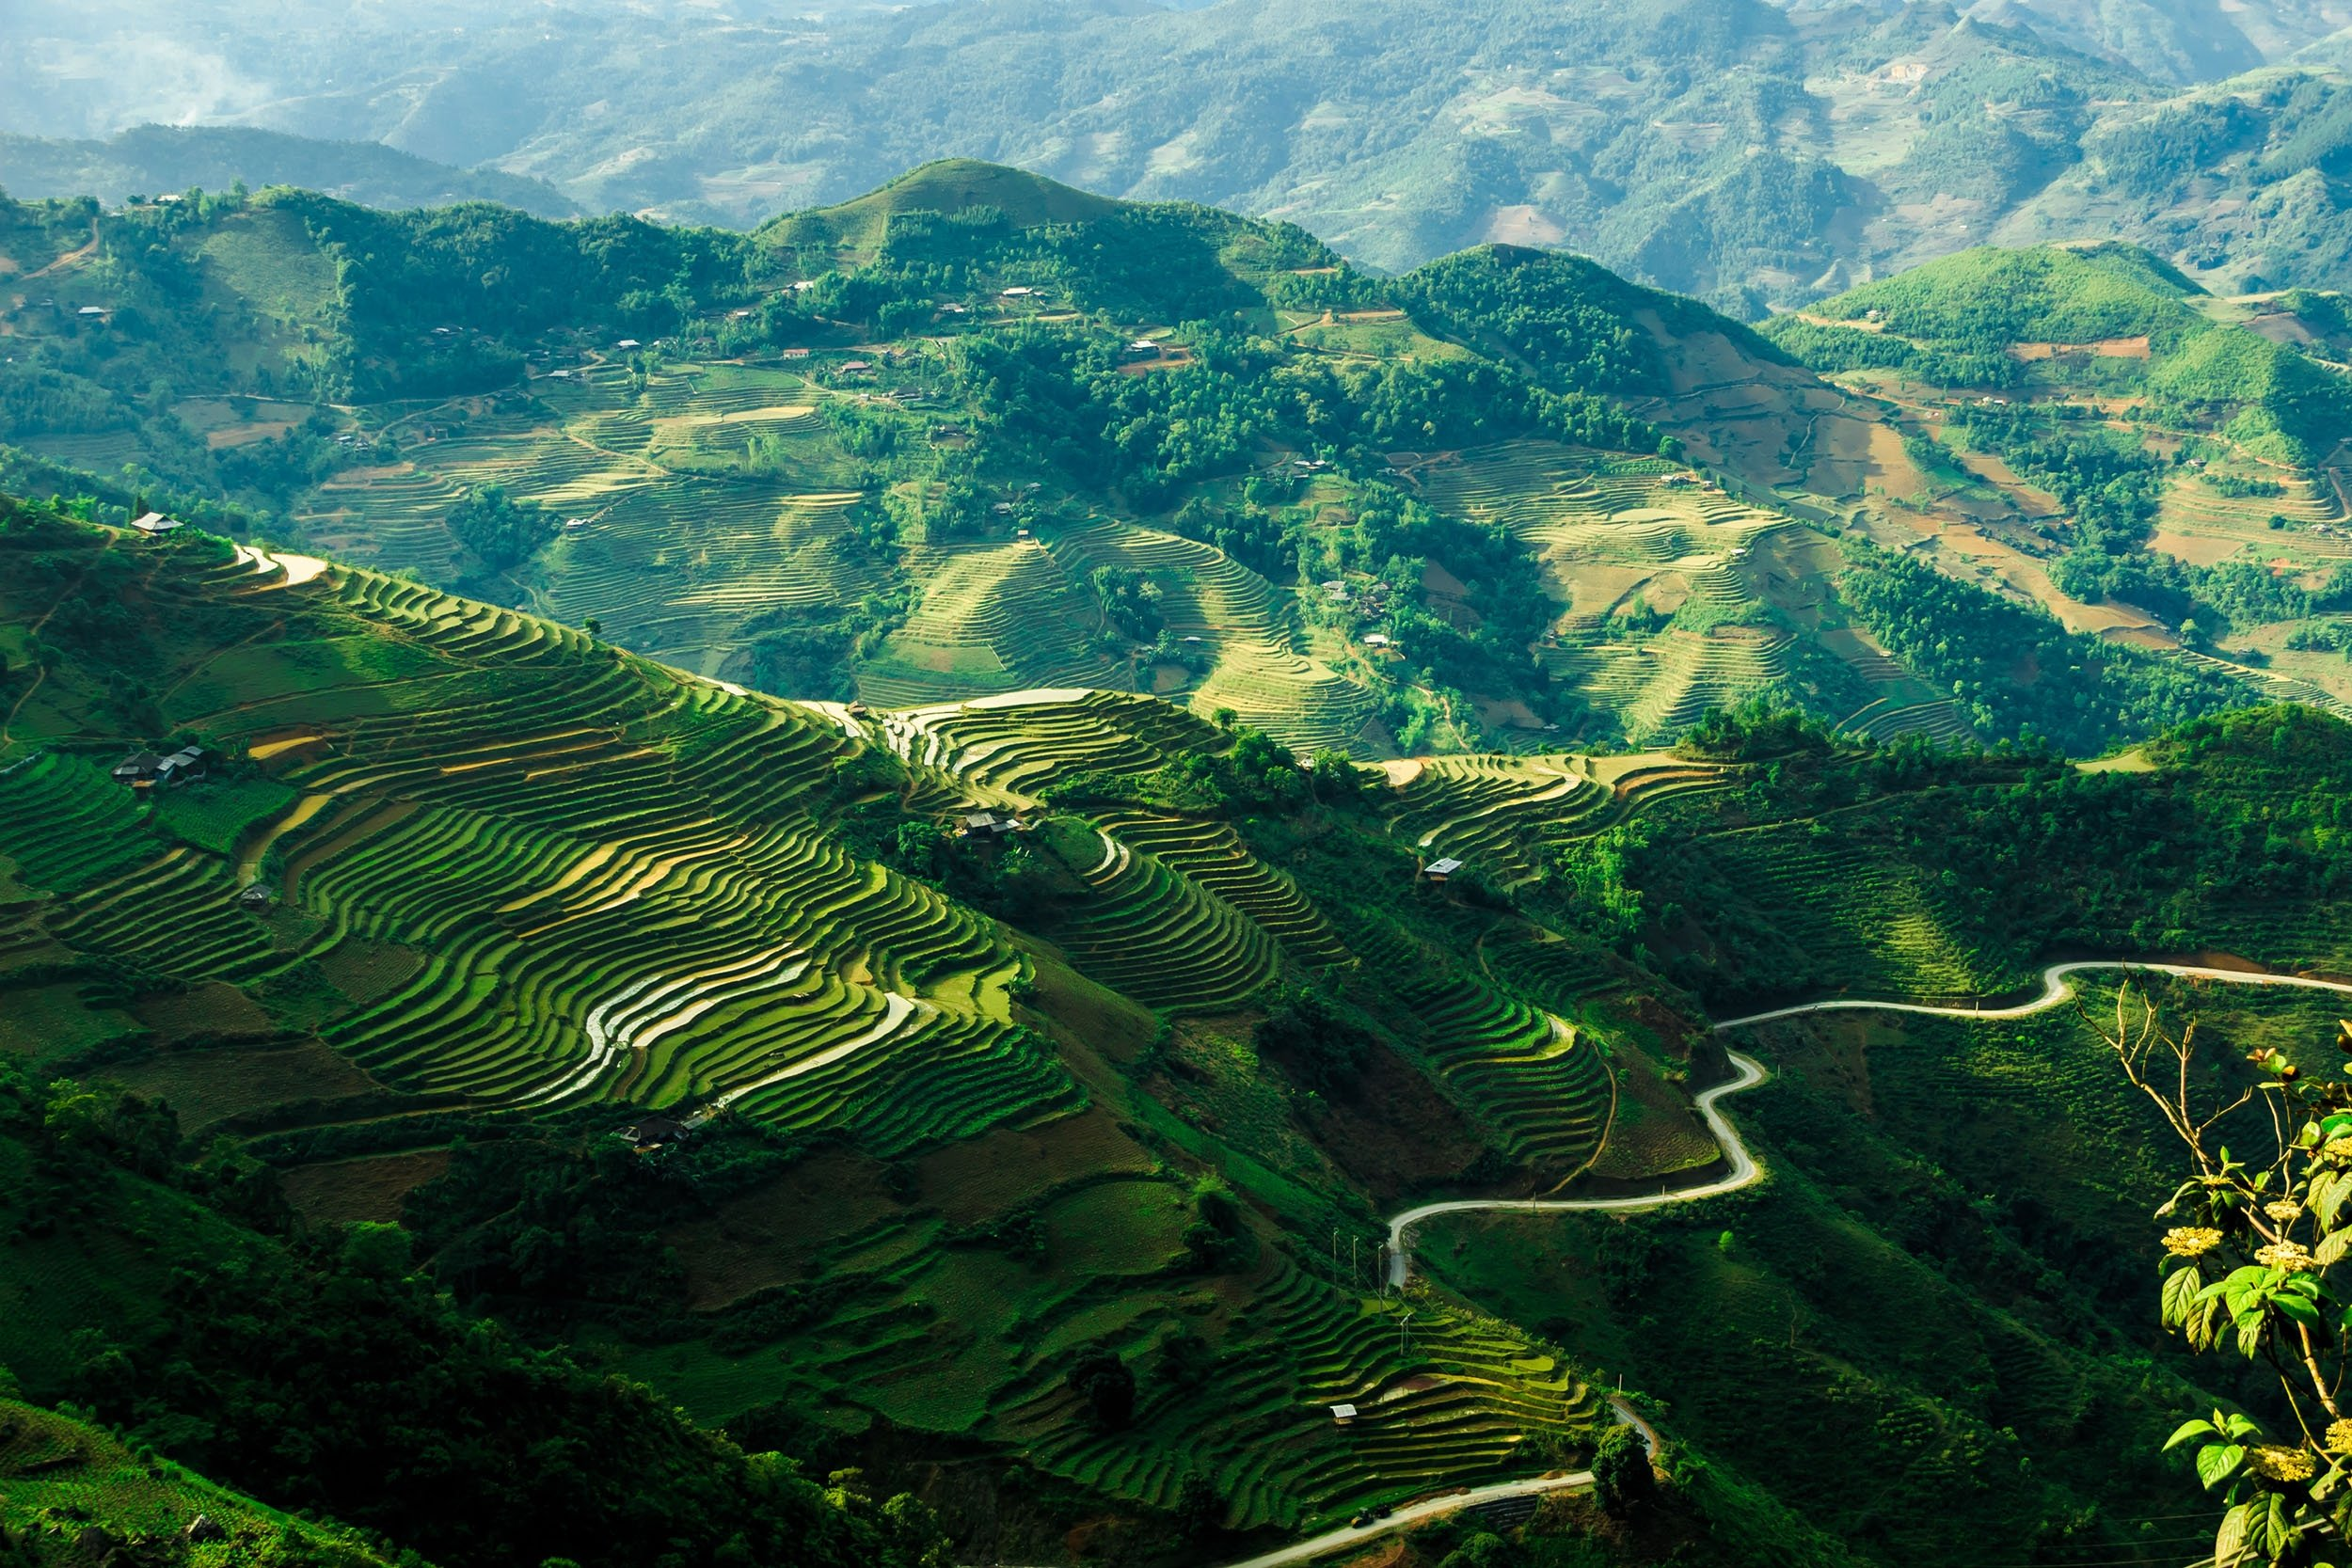 The color green covers entire landscape withrice fields high up in the mountains of Ha Giang, Vietnam.(Shutterstock Photo)